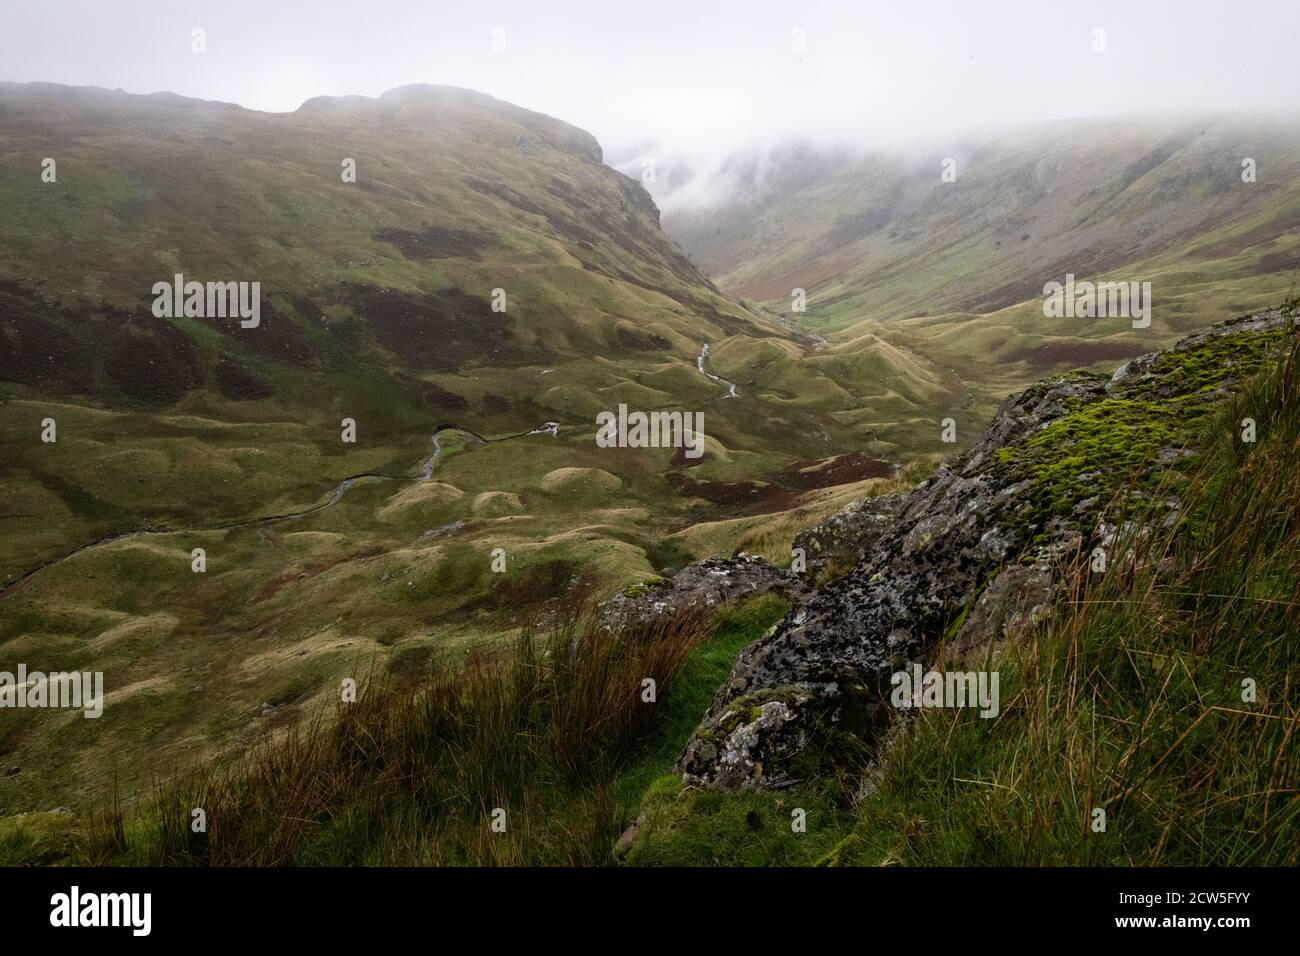 Drumlins - View from Lining Crag of Greenup Gill Valley, Lake District, England, UK, part of the Coast to Coast Walk Stock Photo